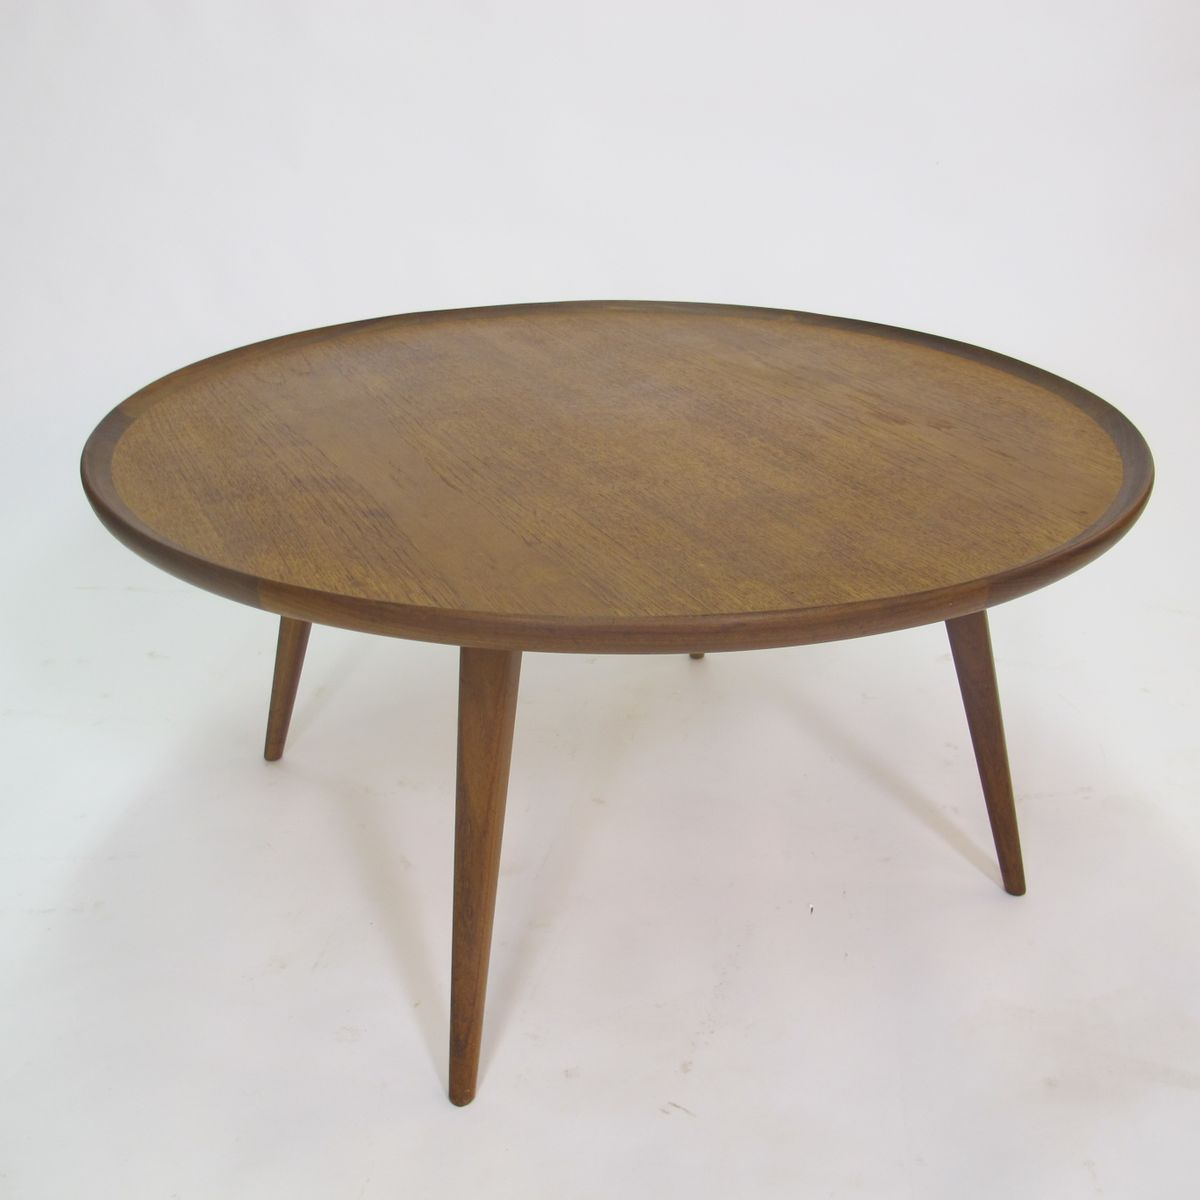 Mid Century Two Tone Coffee Table By Weiman: Mid-Century Round Teak Coffee Table, 1950s For Sale At Pamono